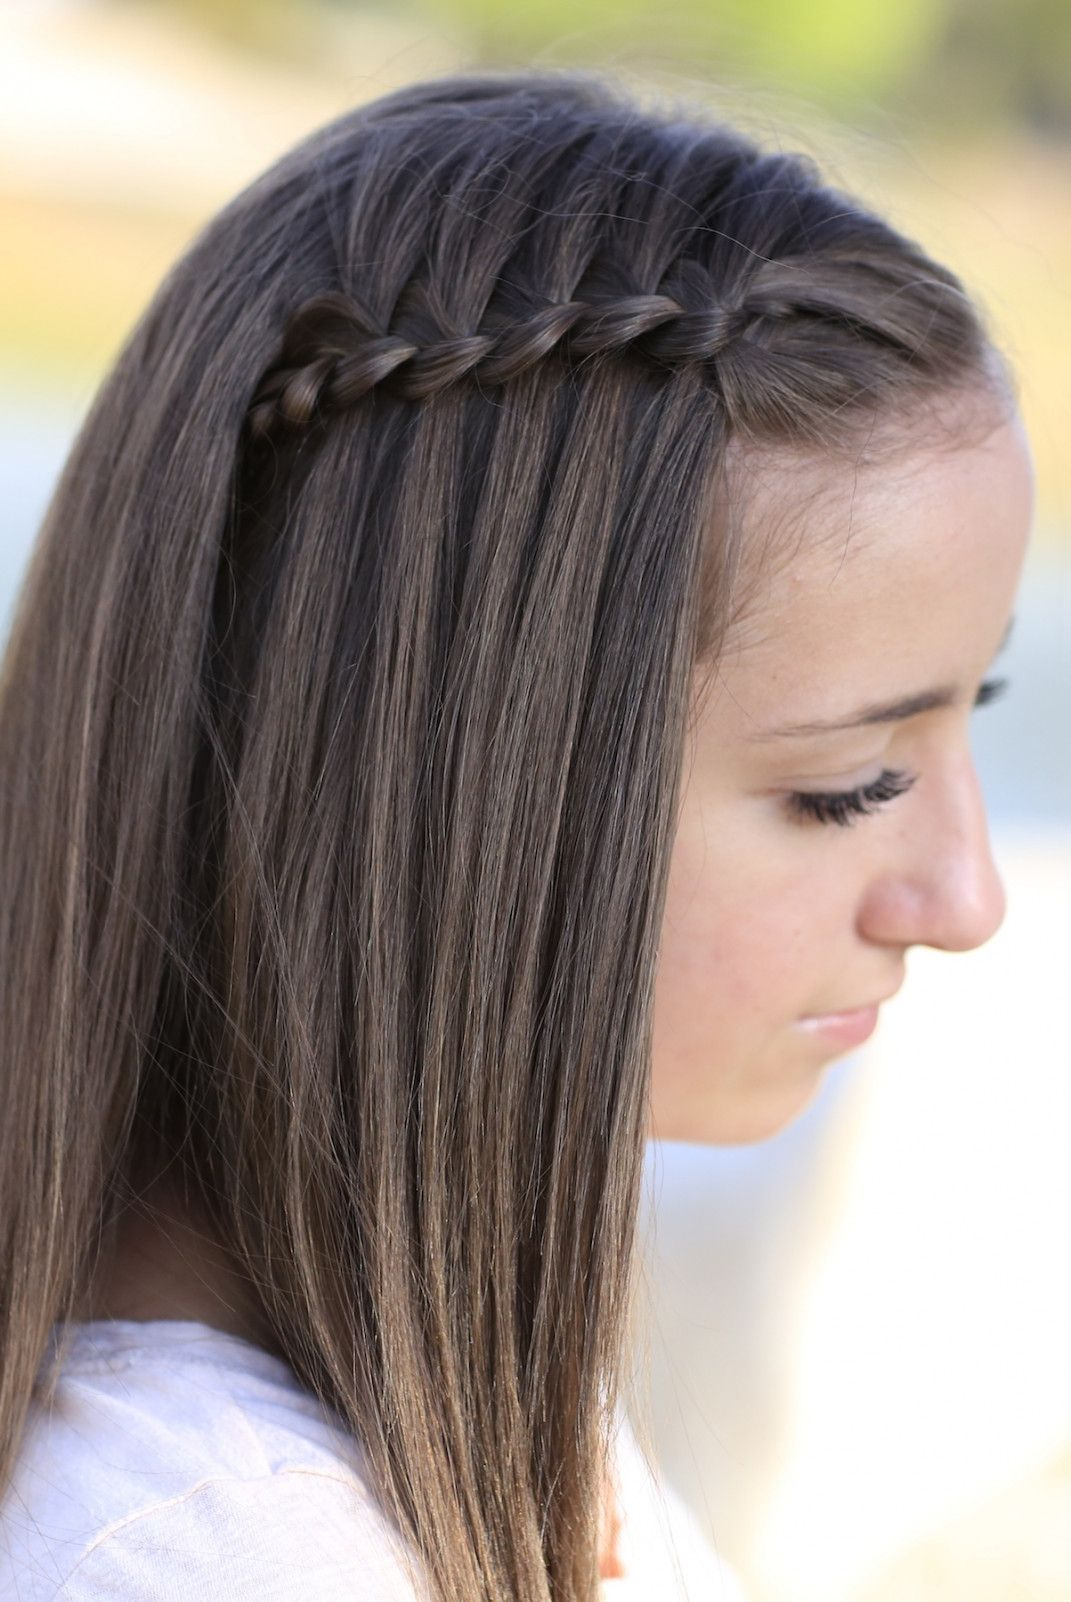 Cute Haircuts For 11 Year Olds Haircuts For Man Women Best Old Hairstyles Girl Hairstyles Cool Hairstyles For Girls